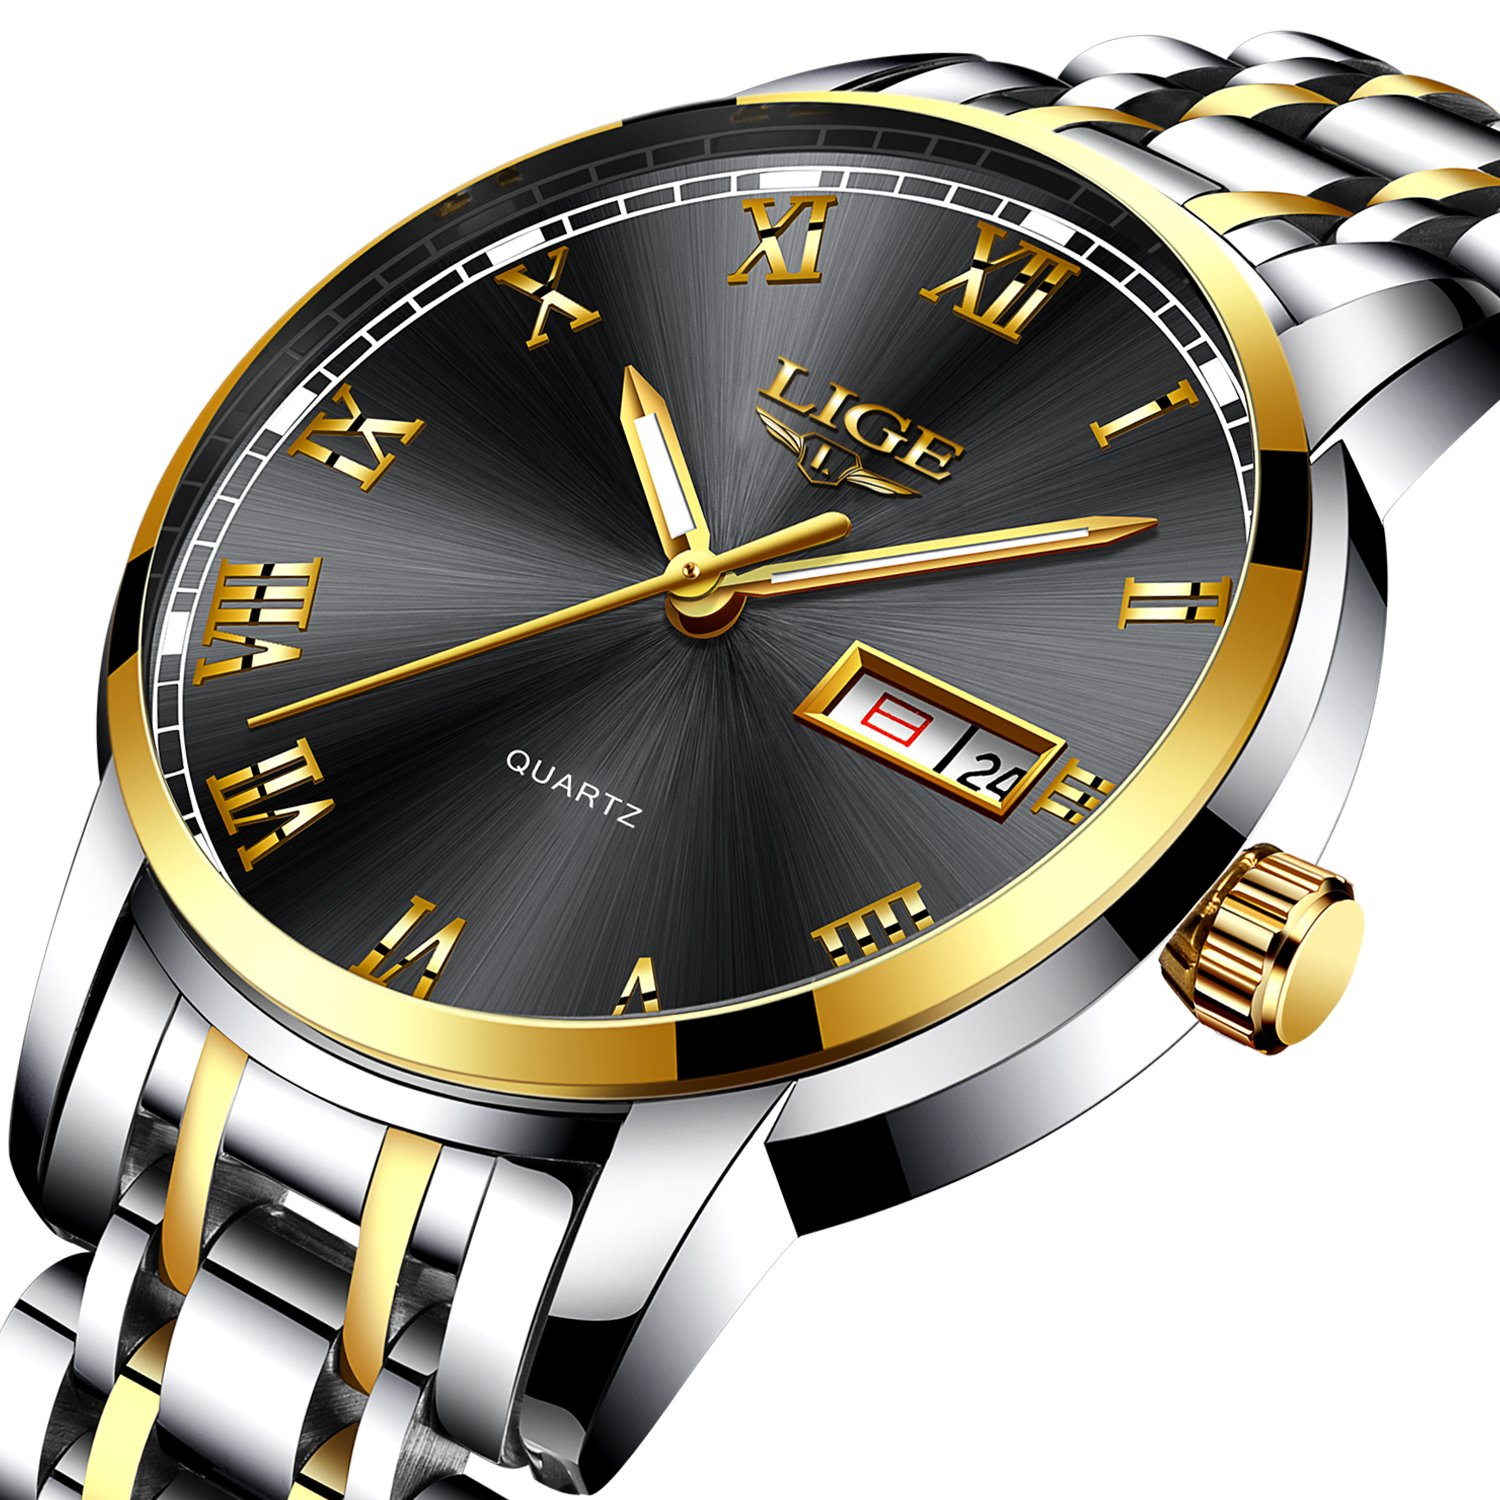 Mens Watches Fashion Sports Quartz Watch Stainless Steel Silver with Gold Strap Top Brand Luxury Simple Style Business Watch Waterproof 30M With Black Dial